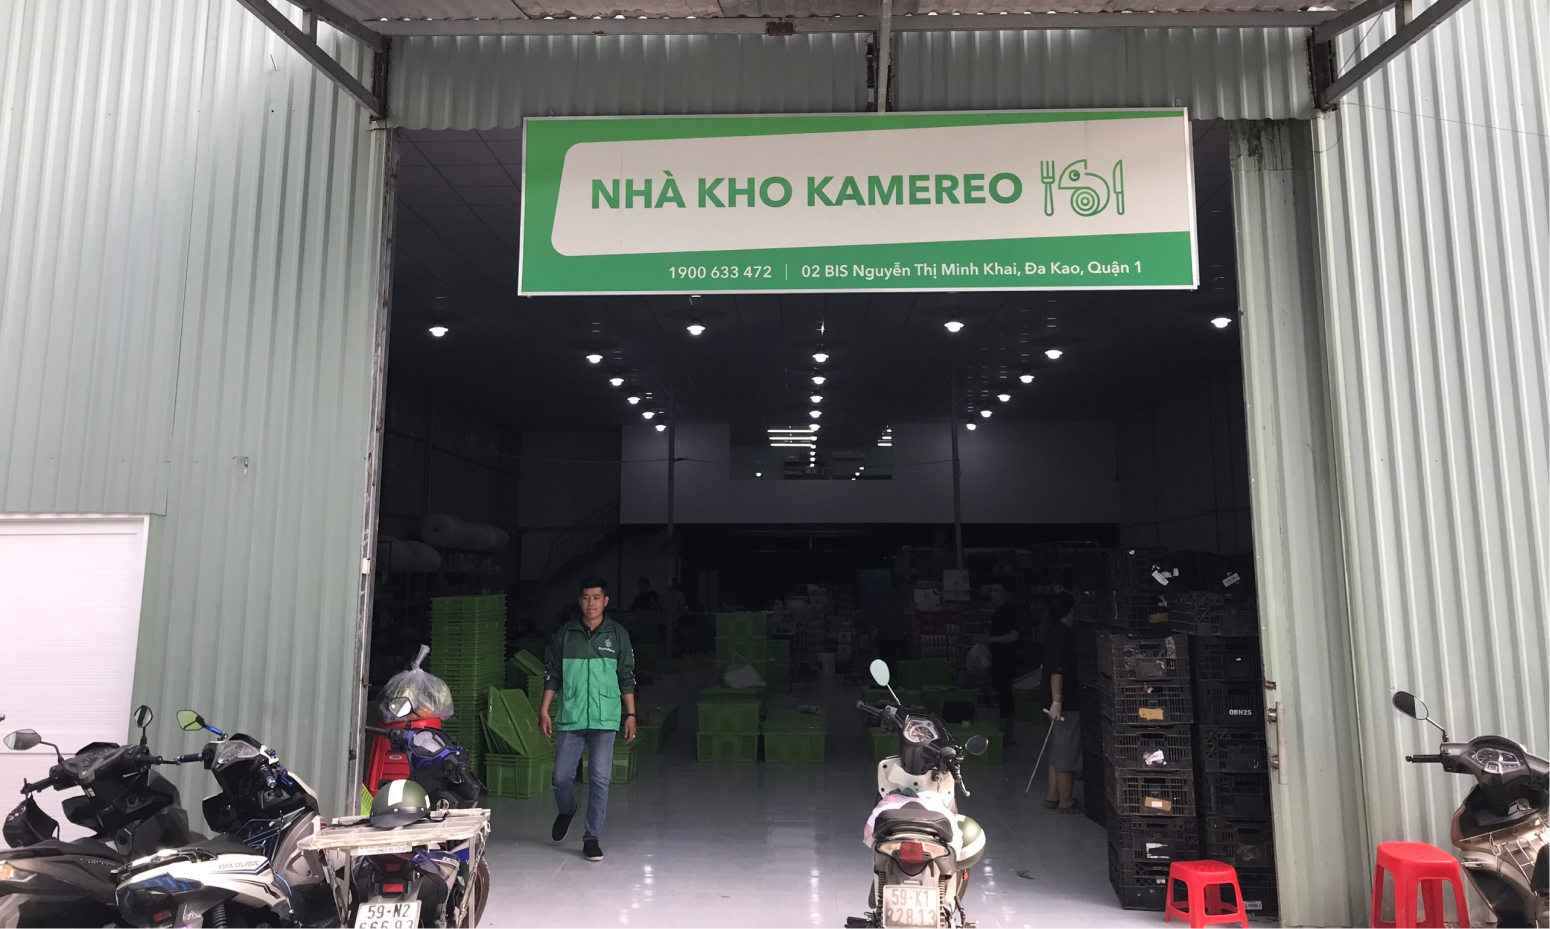 Kamereo gets $4.6M to connect farmers and F&B businesses in V...